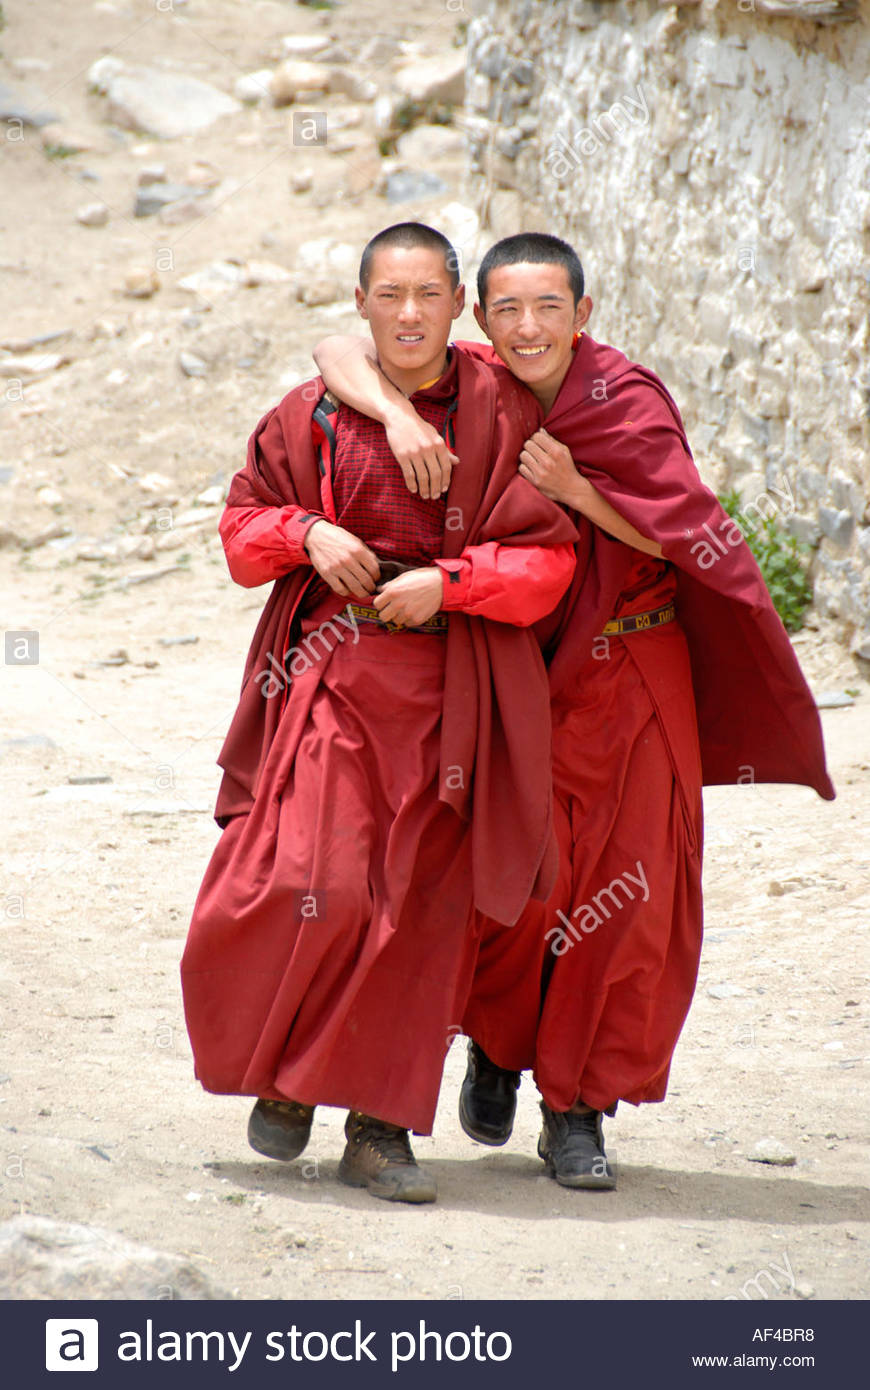 smiling-tibetan-monks-in-red-robes-hug-each-other-rongbuk-monastery-AF4BR8.jpg